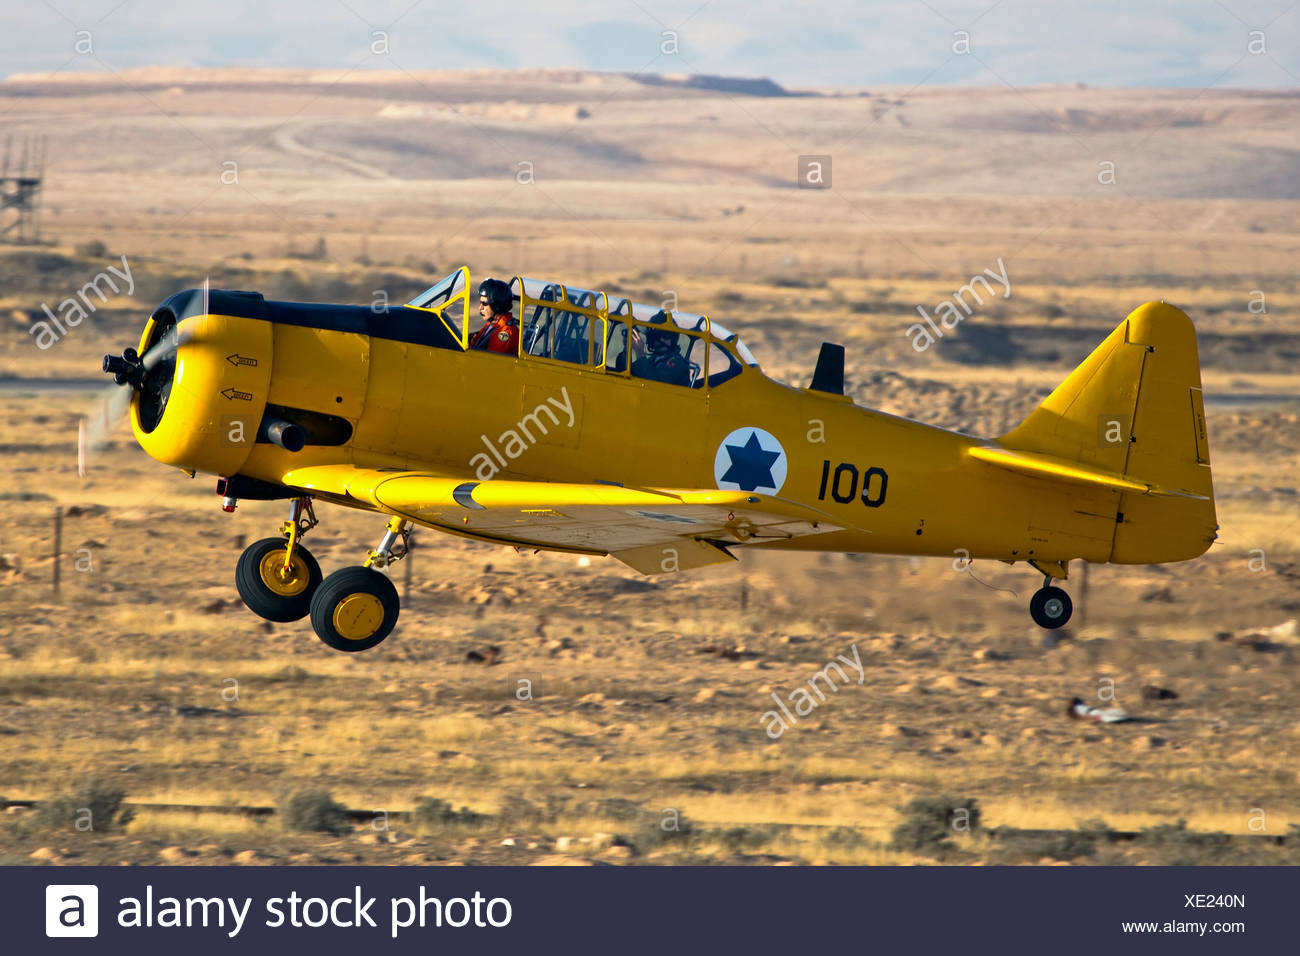 Israeli Air force North American Aviation T-6 Texan single-engine advanced trainer aircraft in flight - Stock Image